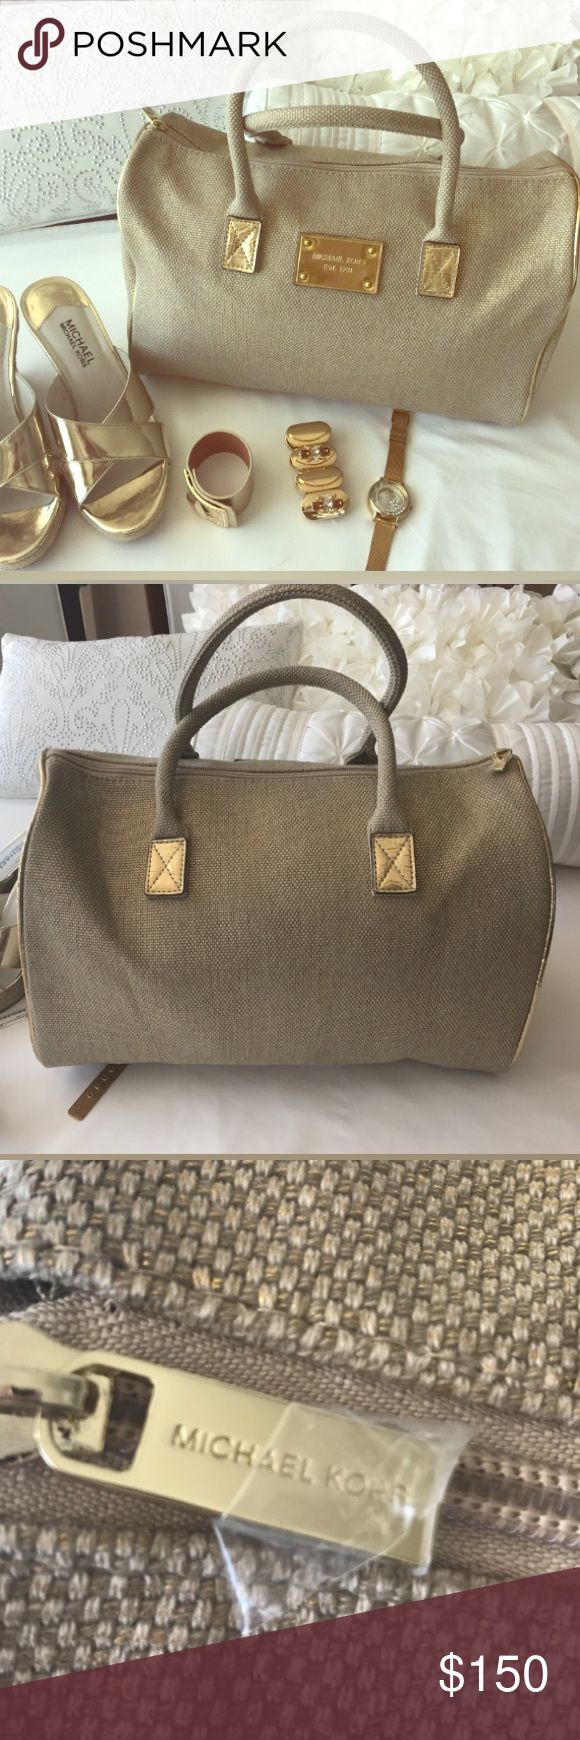 Michael kors canvas bag Great condition! Barely used, like new Michael Kors Bags Satchels